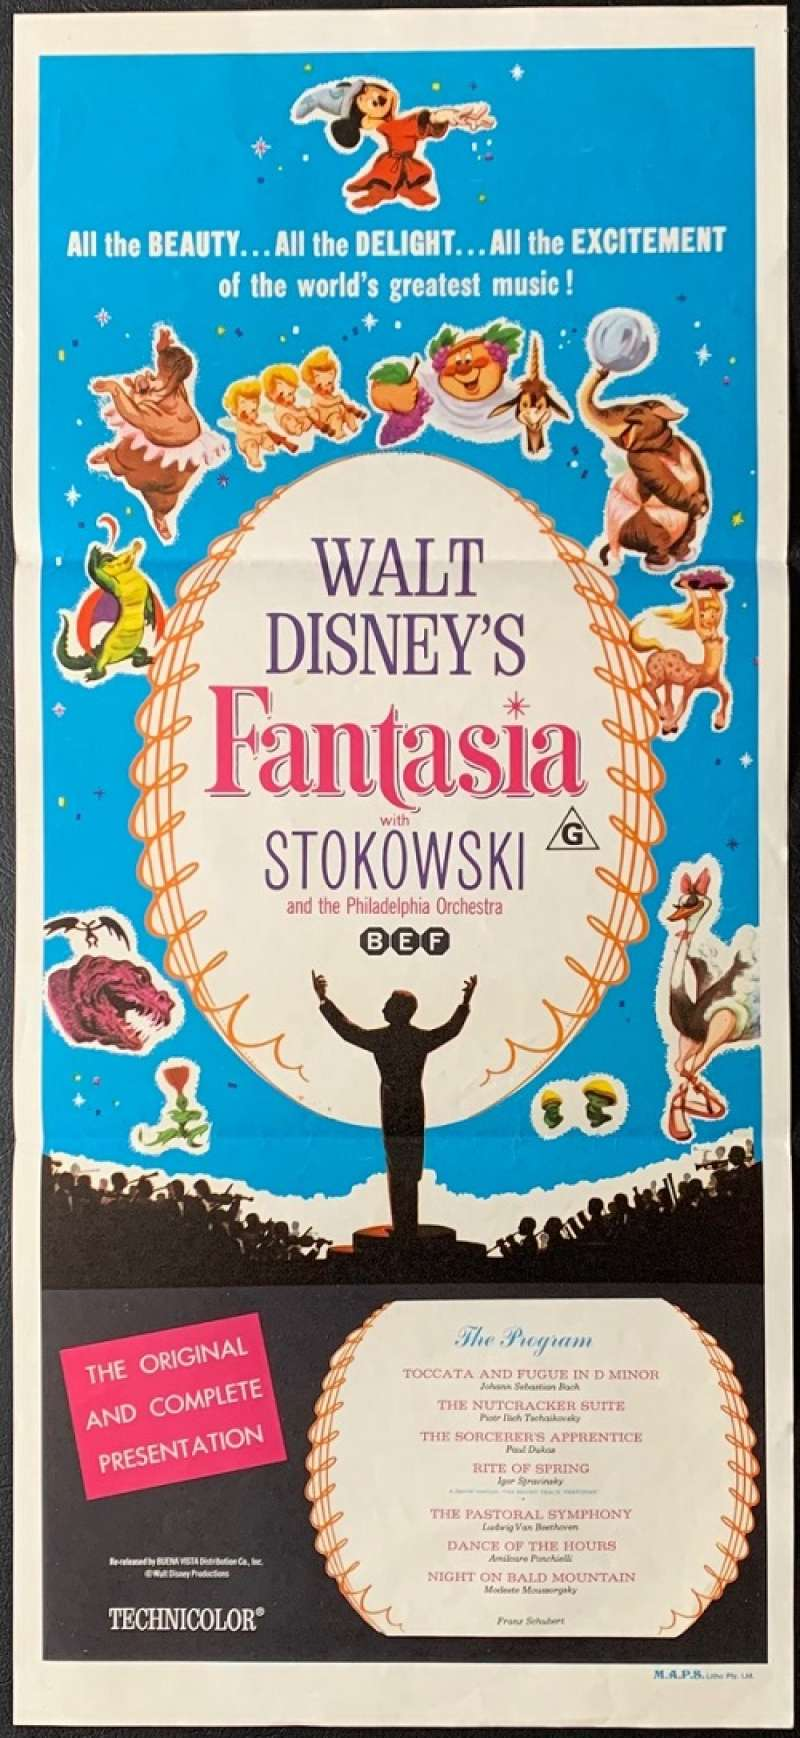 All About Movies Fantasia Movie Poster Original Daybill 1963 Re Issue Disney